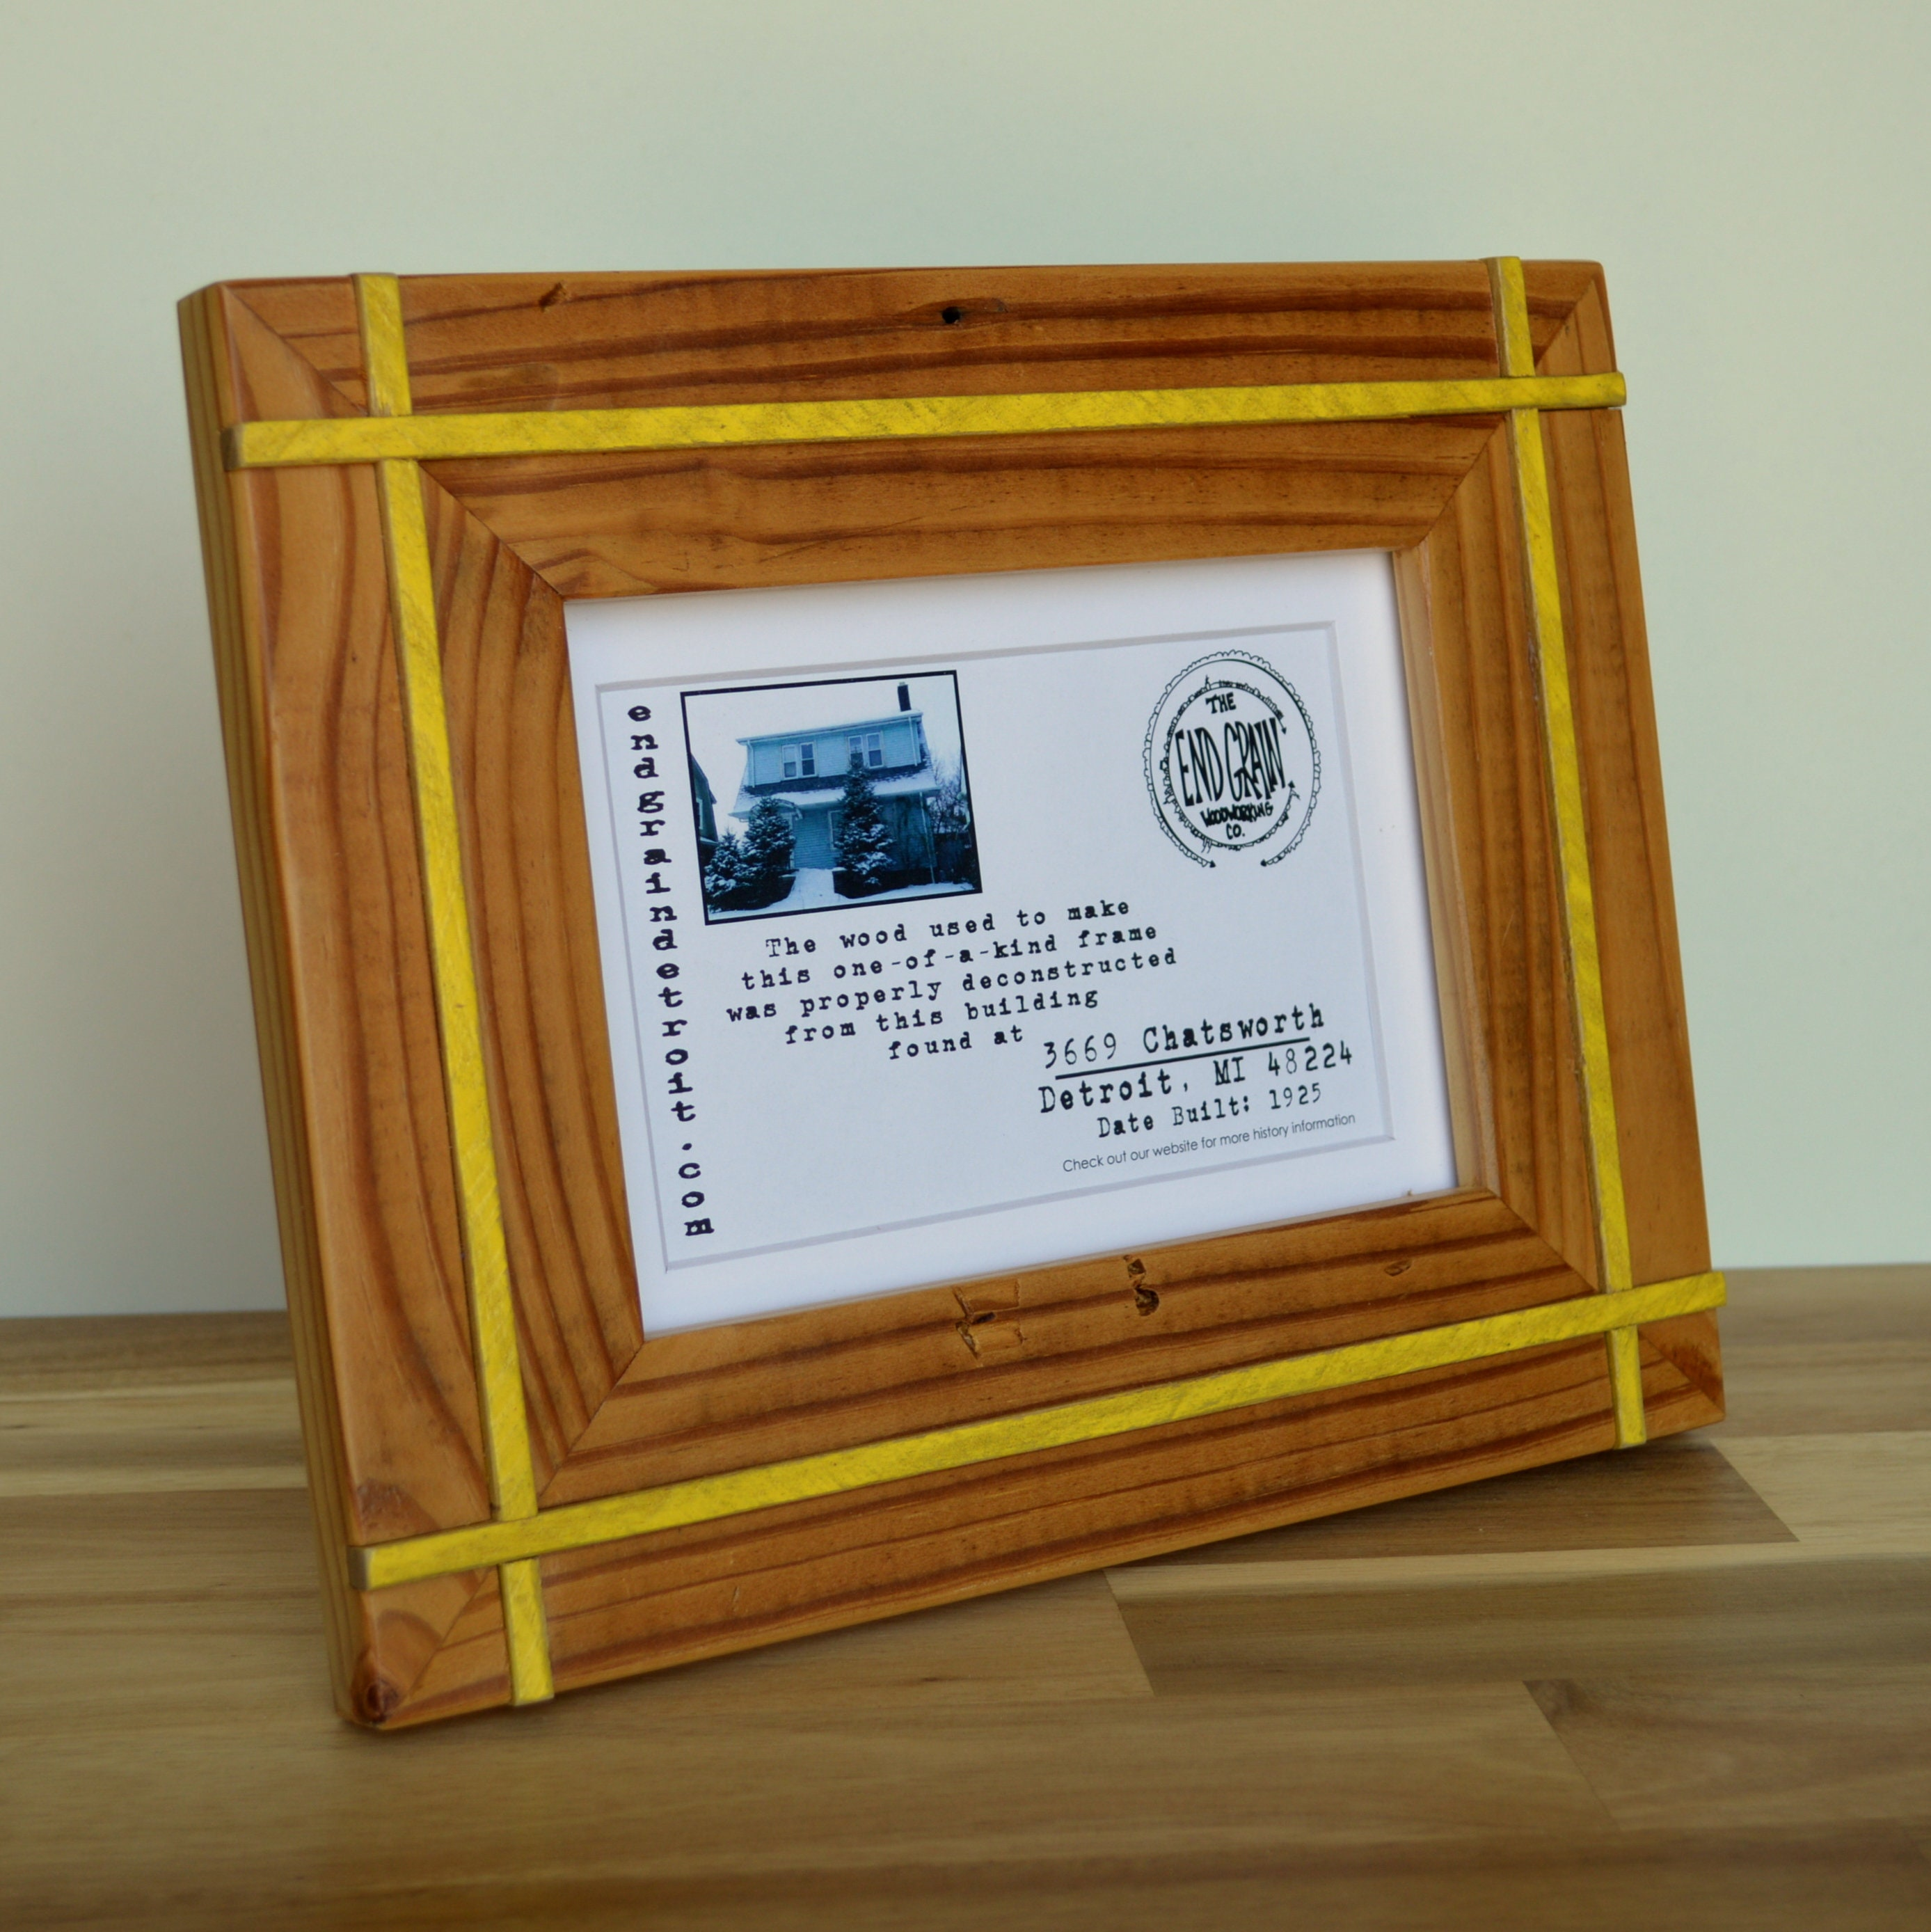 5 x 7 Reclaimed Wooden Picture Frame 3669 Chatsworth | Etsy